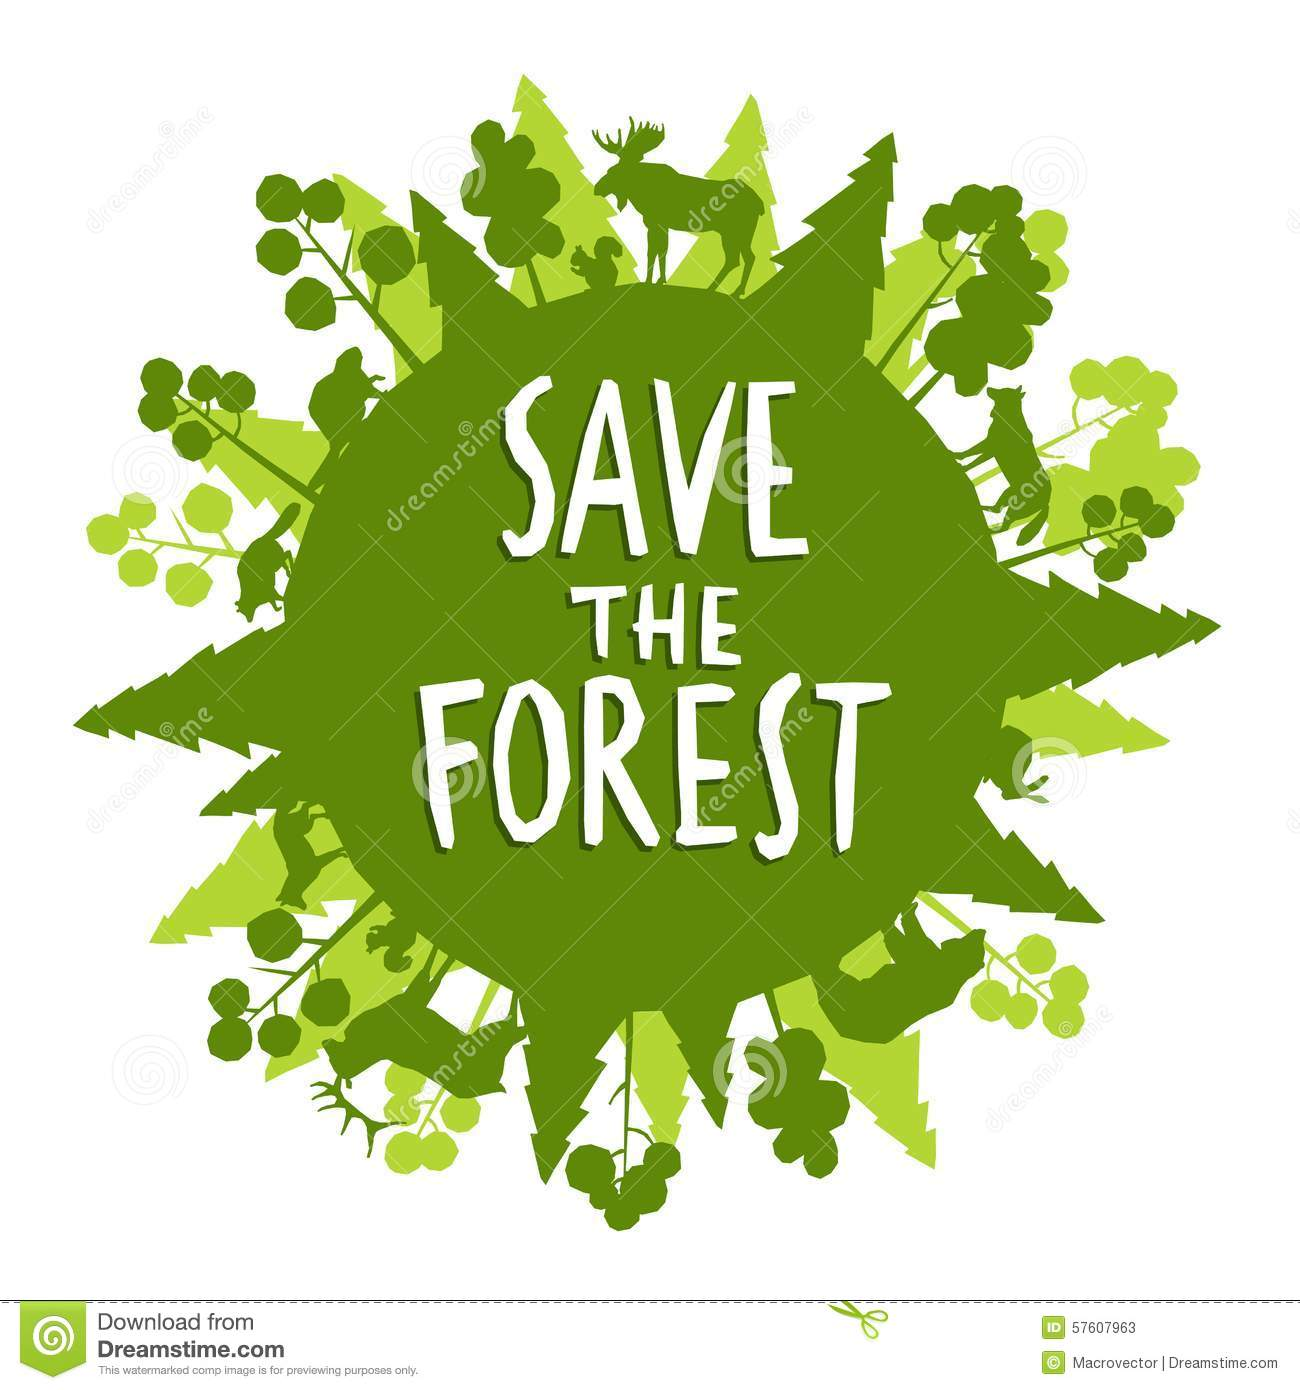 a discussion on saving trees and forests